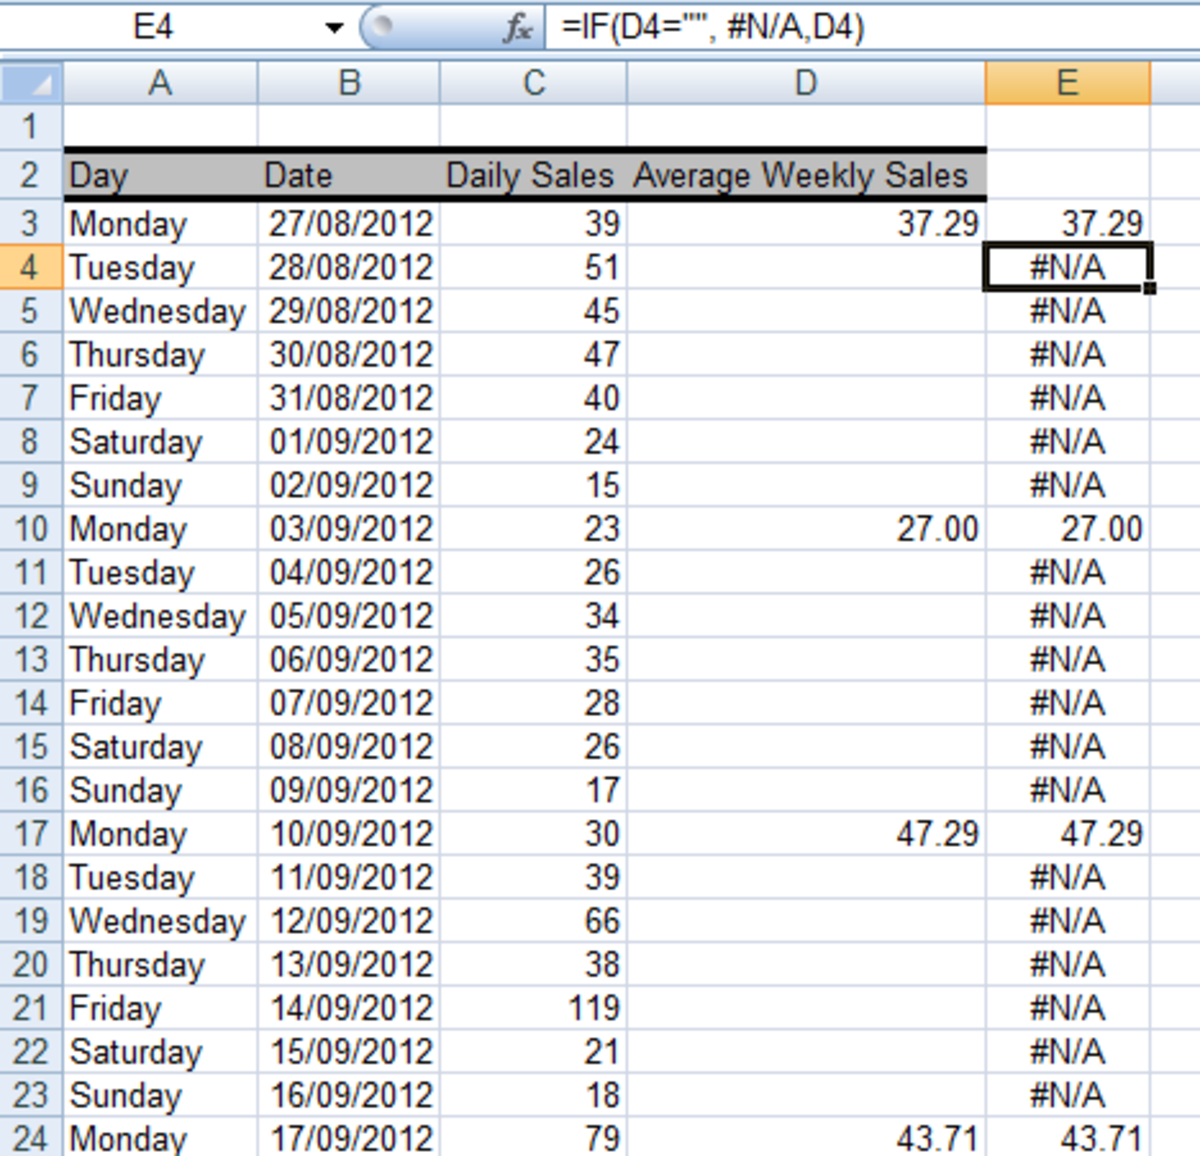 Ediblewildsus  Surprising How To Get Excel  And  To Ignore Empty Cells In A Chart Or  With Likable Using The If Function In A Formula To Convert Empty Cells To Na With Delightful Excel Payroll Spreadsheet Also Excel Catalog Template In Addition Excel Mvp And Excel Checksum As Well As Excel Rowscount Additionally Internal Rate Of Return In Excel From Turbofuturecom With Ediblewildsus  Likable How To Get Excel  And  To Ignore Empty Cells In A Chart Or  With Delightful Using The If Function In A Formula To Convert Empty Cells To Na And Surprising Excel Payroll Spreadsheet Also Excel Catalog Template In Addition Excel Mvp From Turbofuturecom